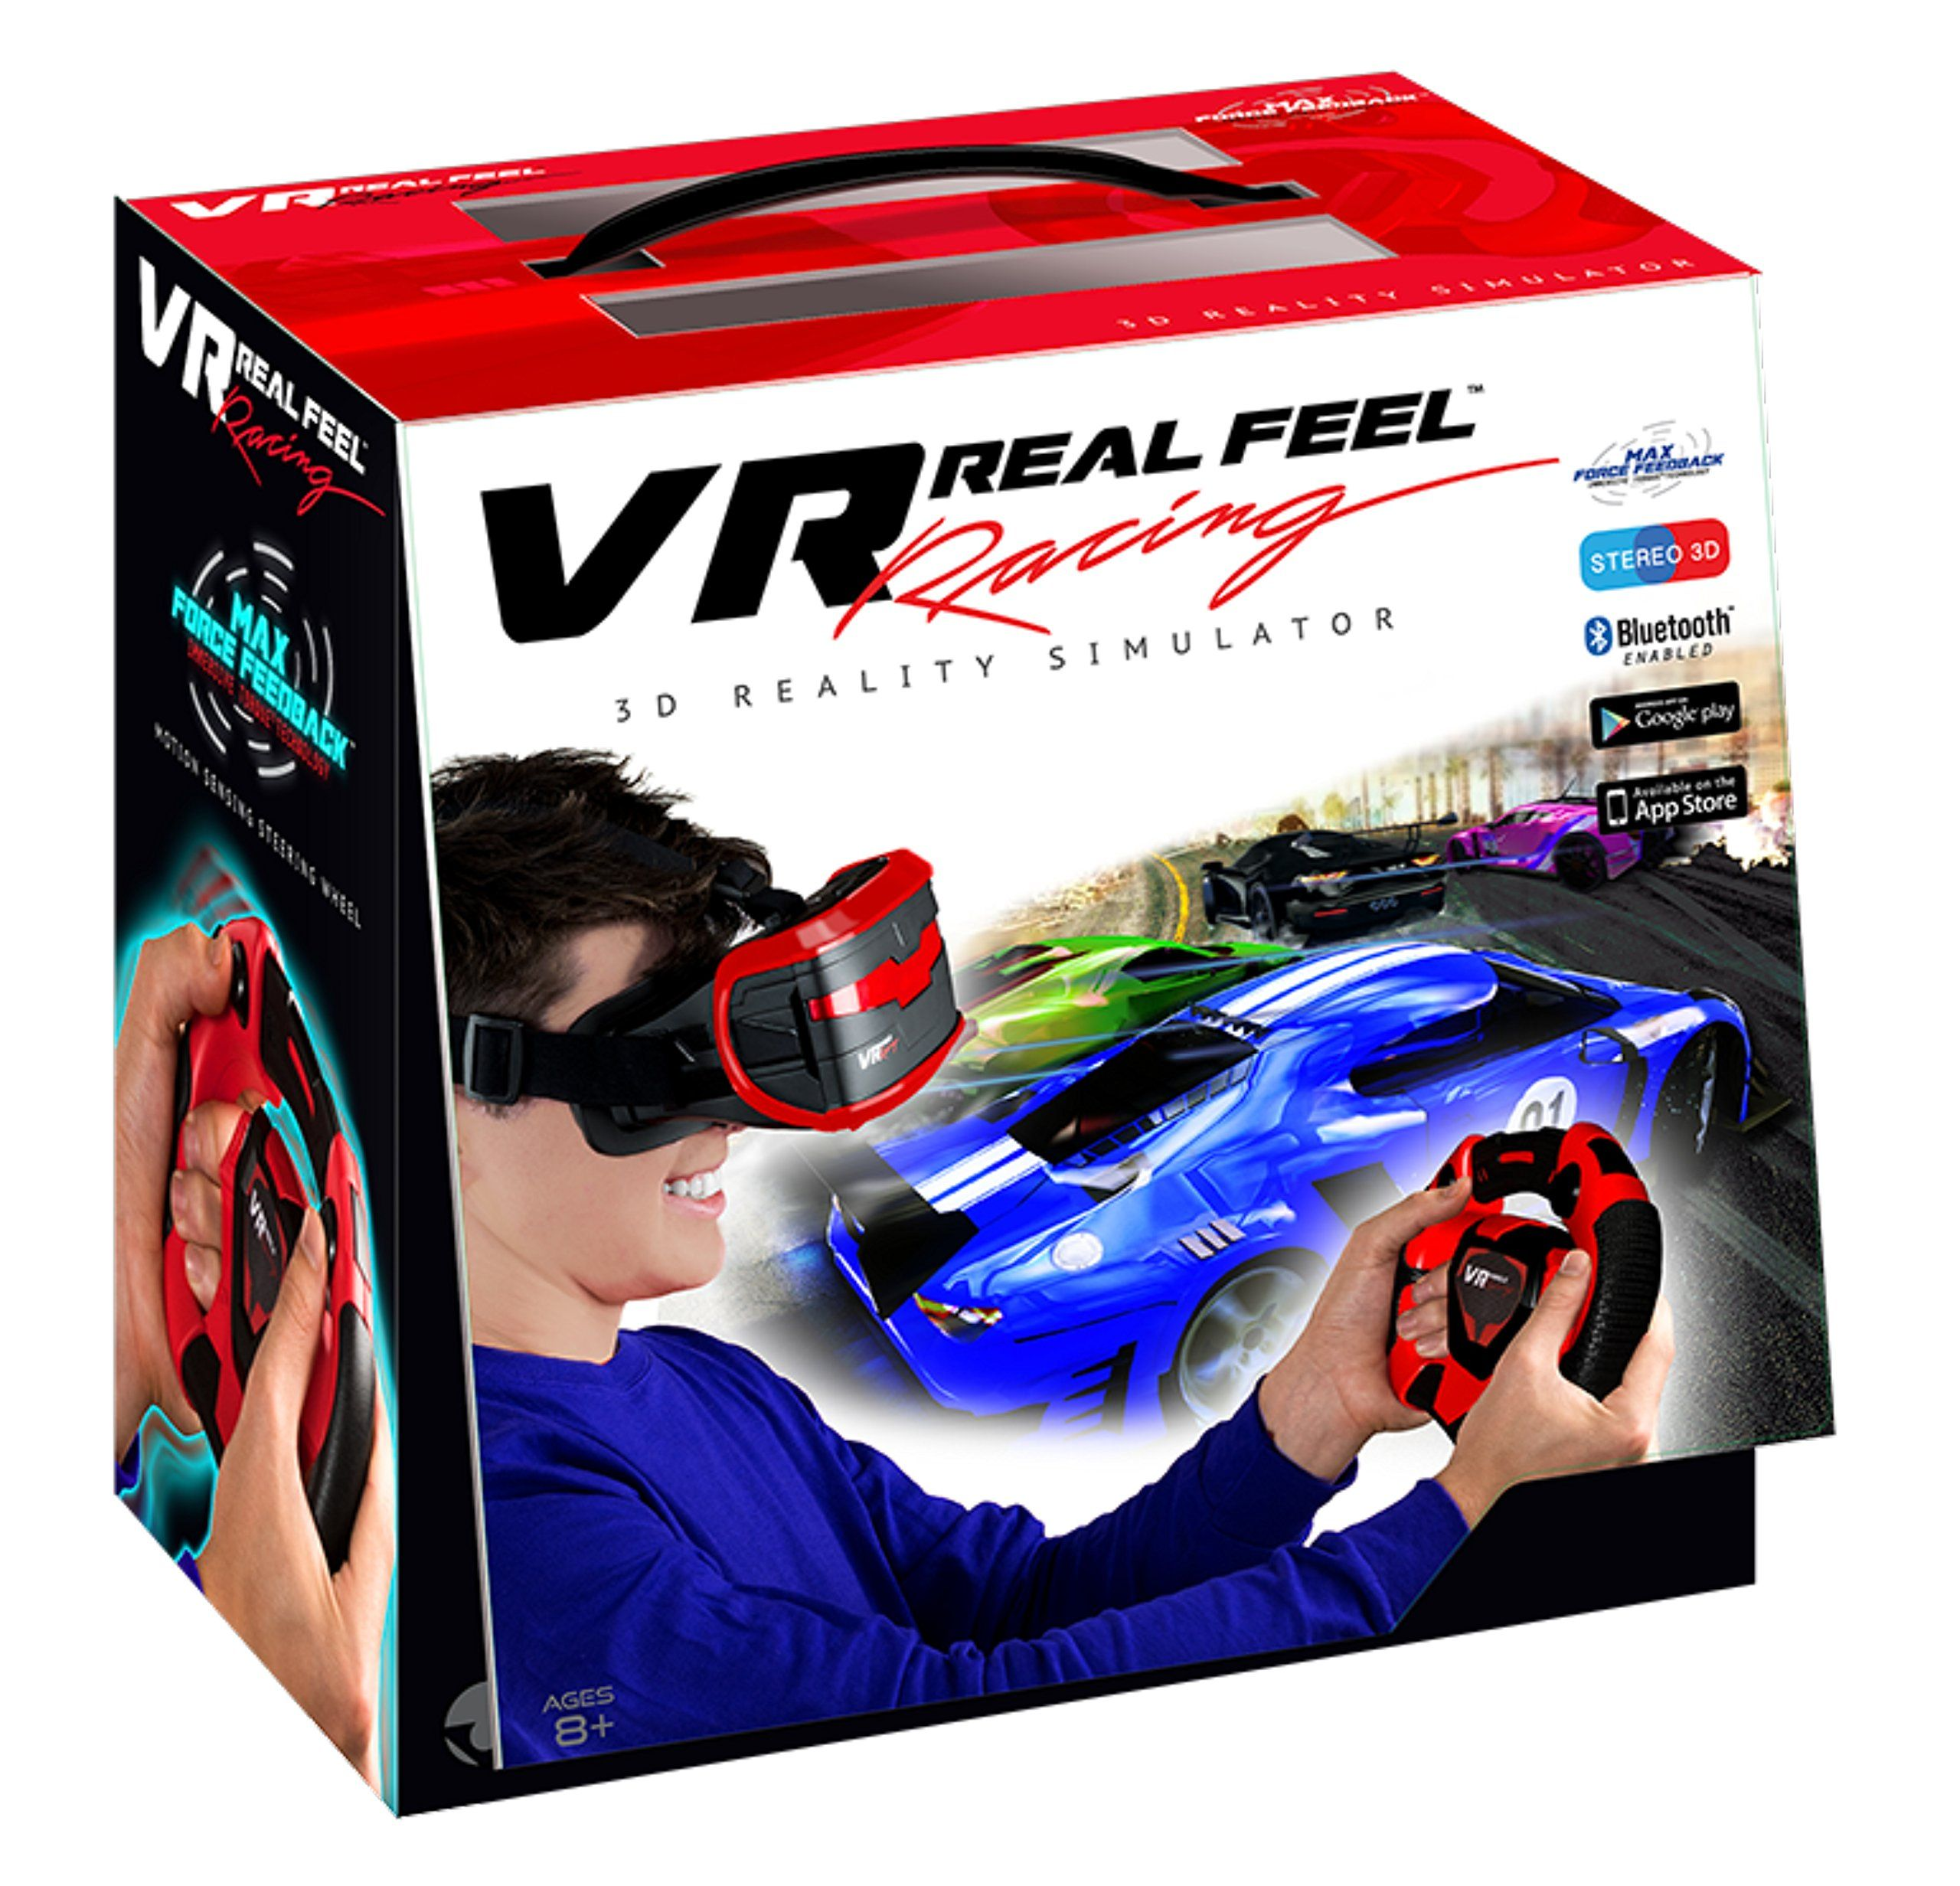 Vr Real Feel Virtual Reality Car Racing Gaming System With Bluetooth Steering Wheel And Headset Goggles Viewer Glasses For Ios I Vr Apps Virtual Reality Racing